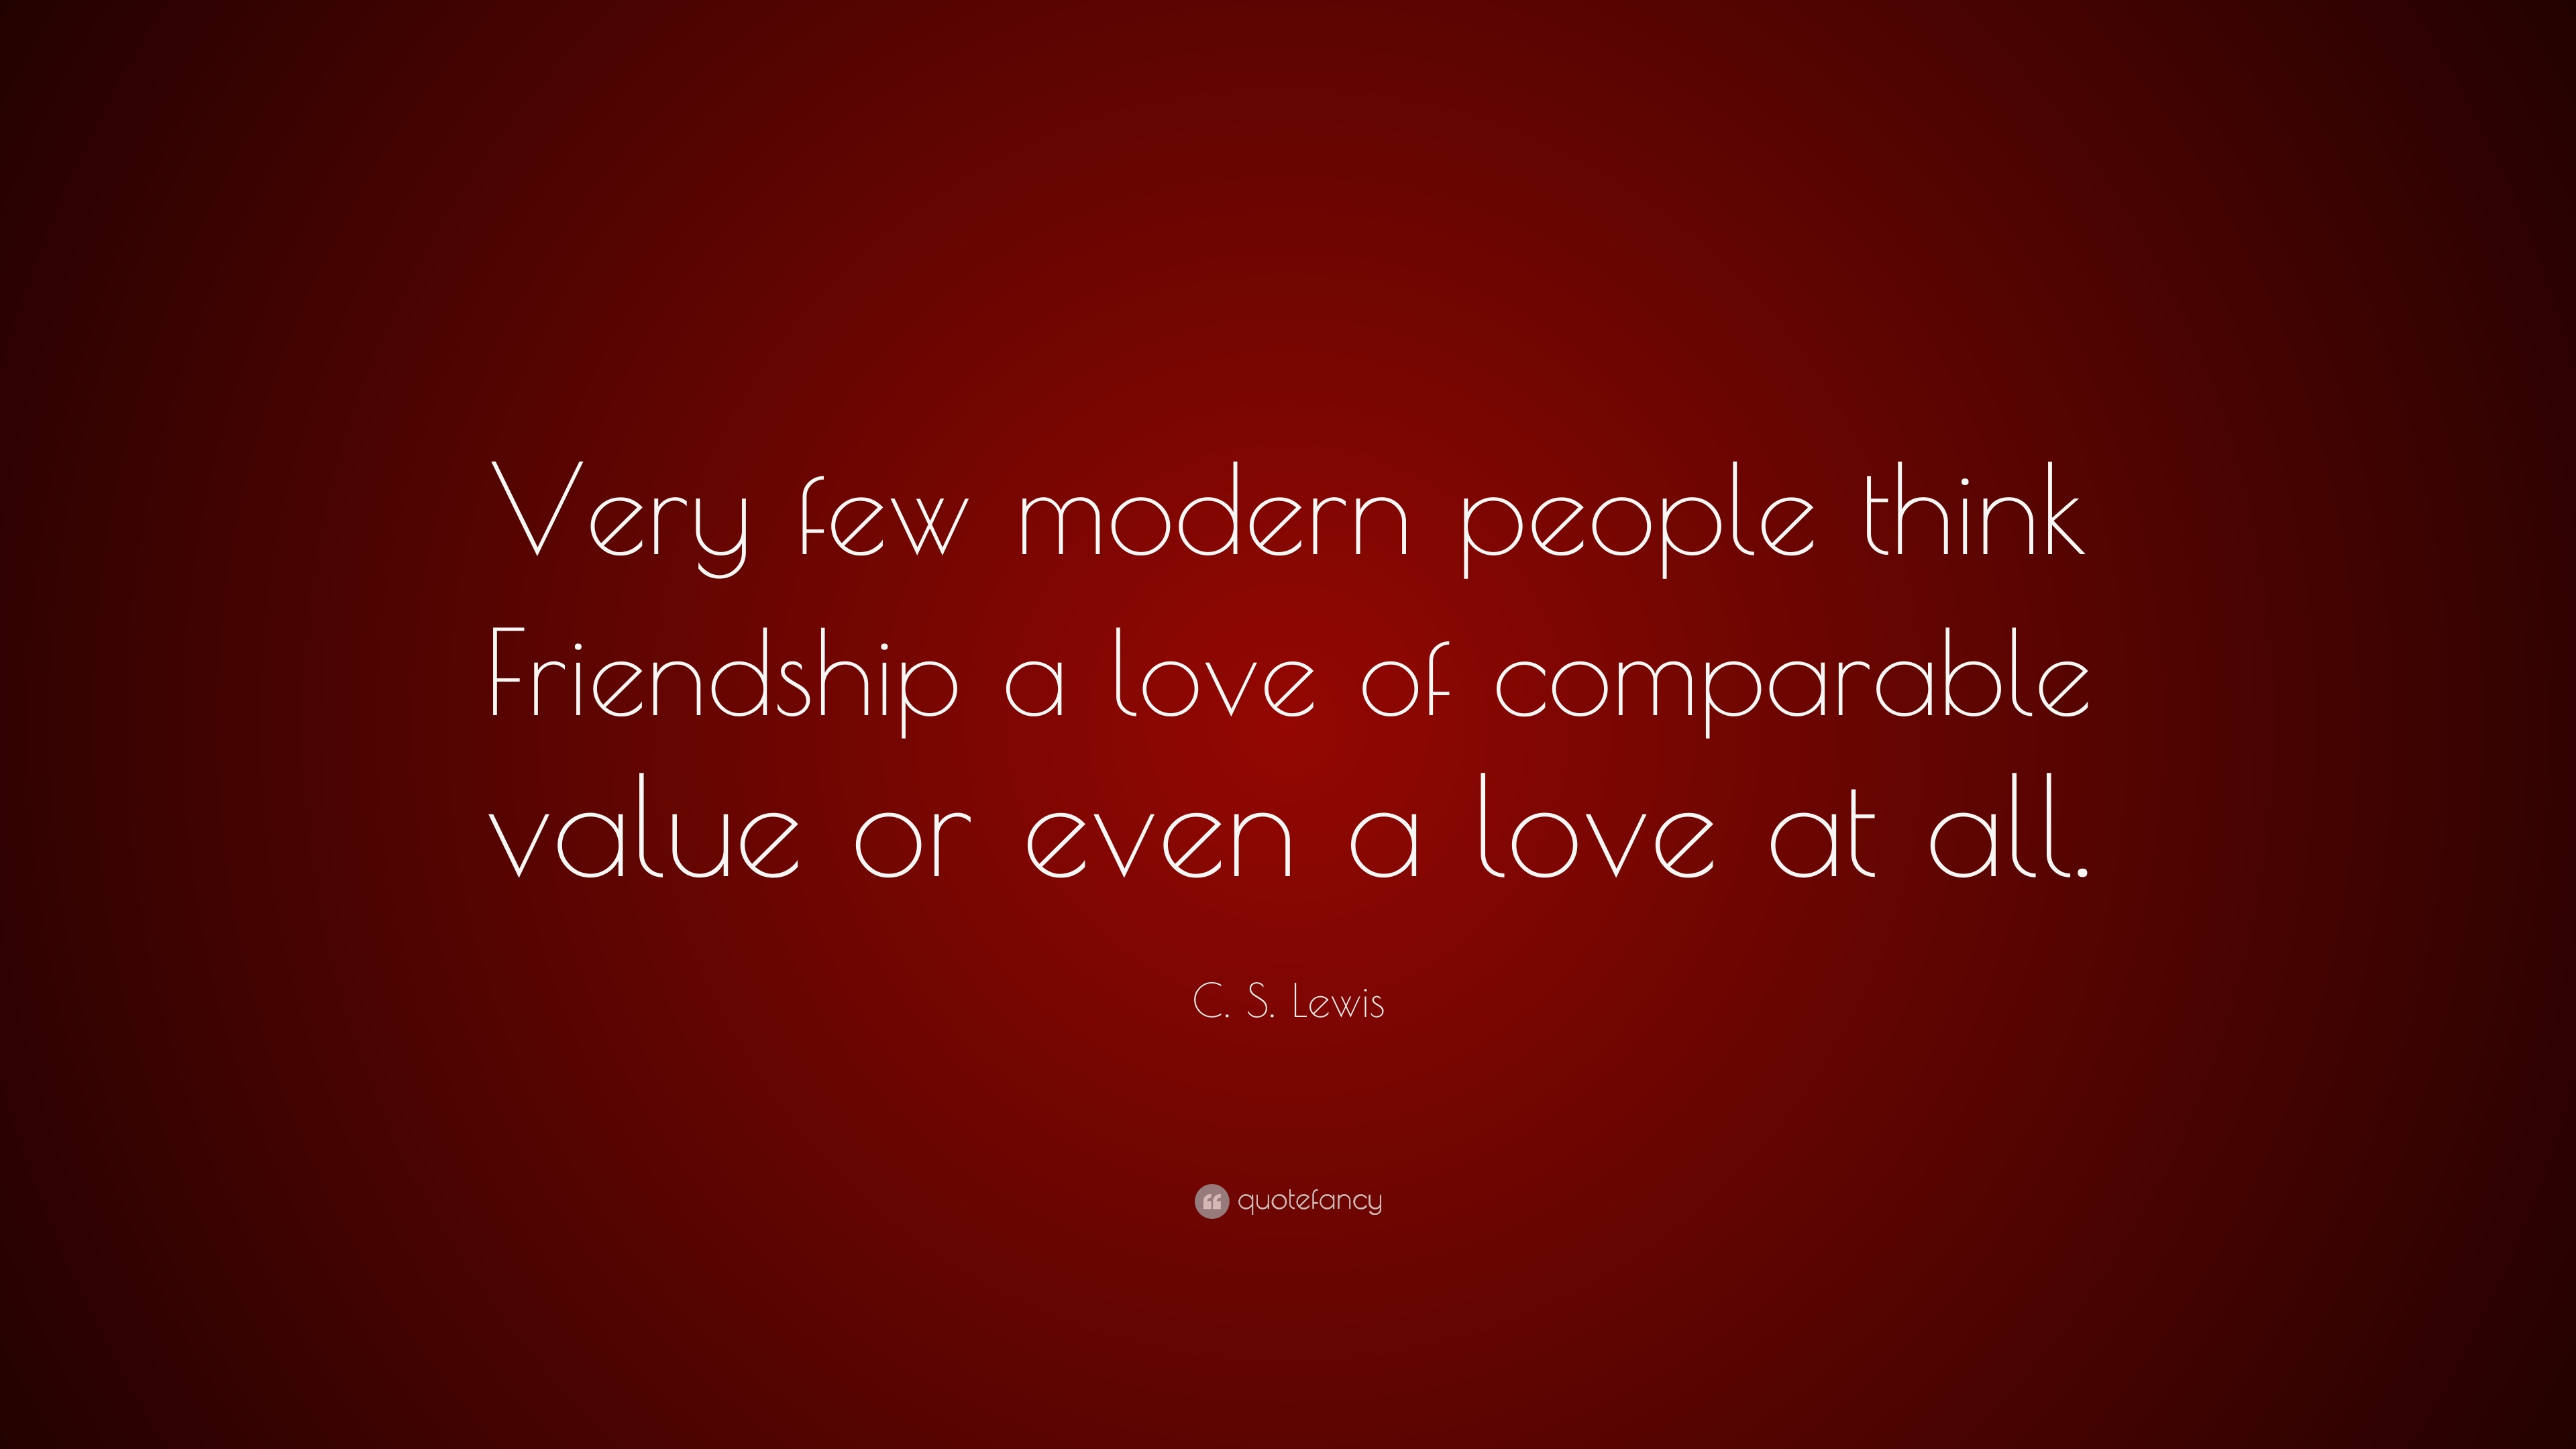 c s lewis quote very few modern people think friendship a love of comparable value